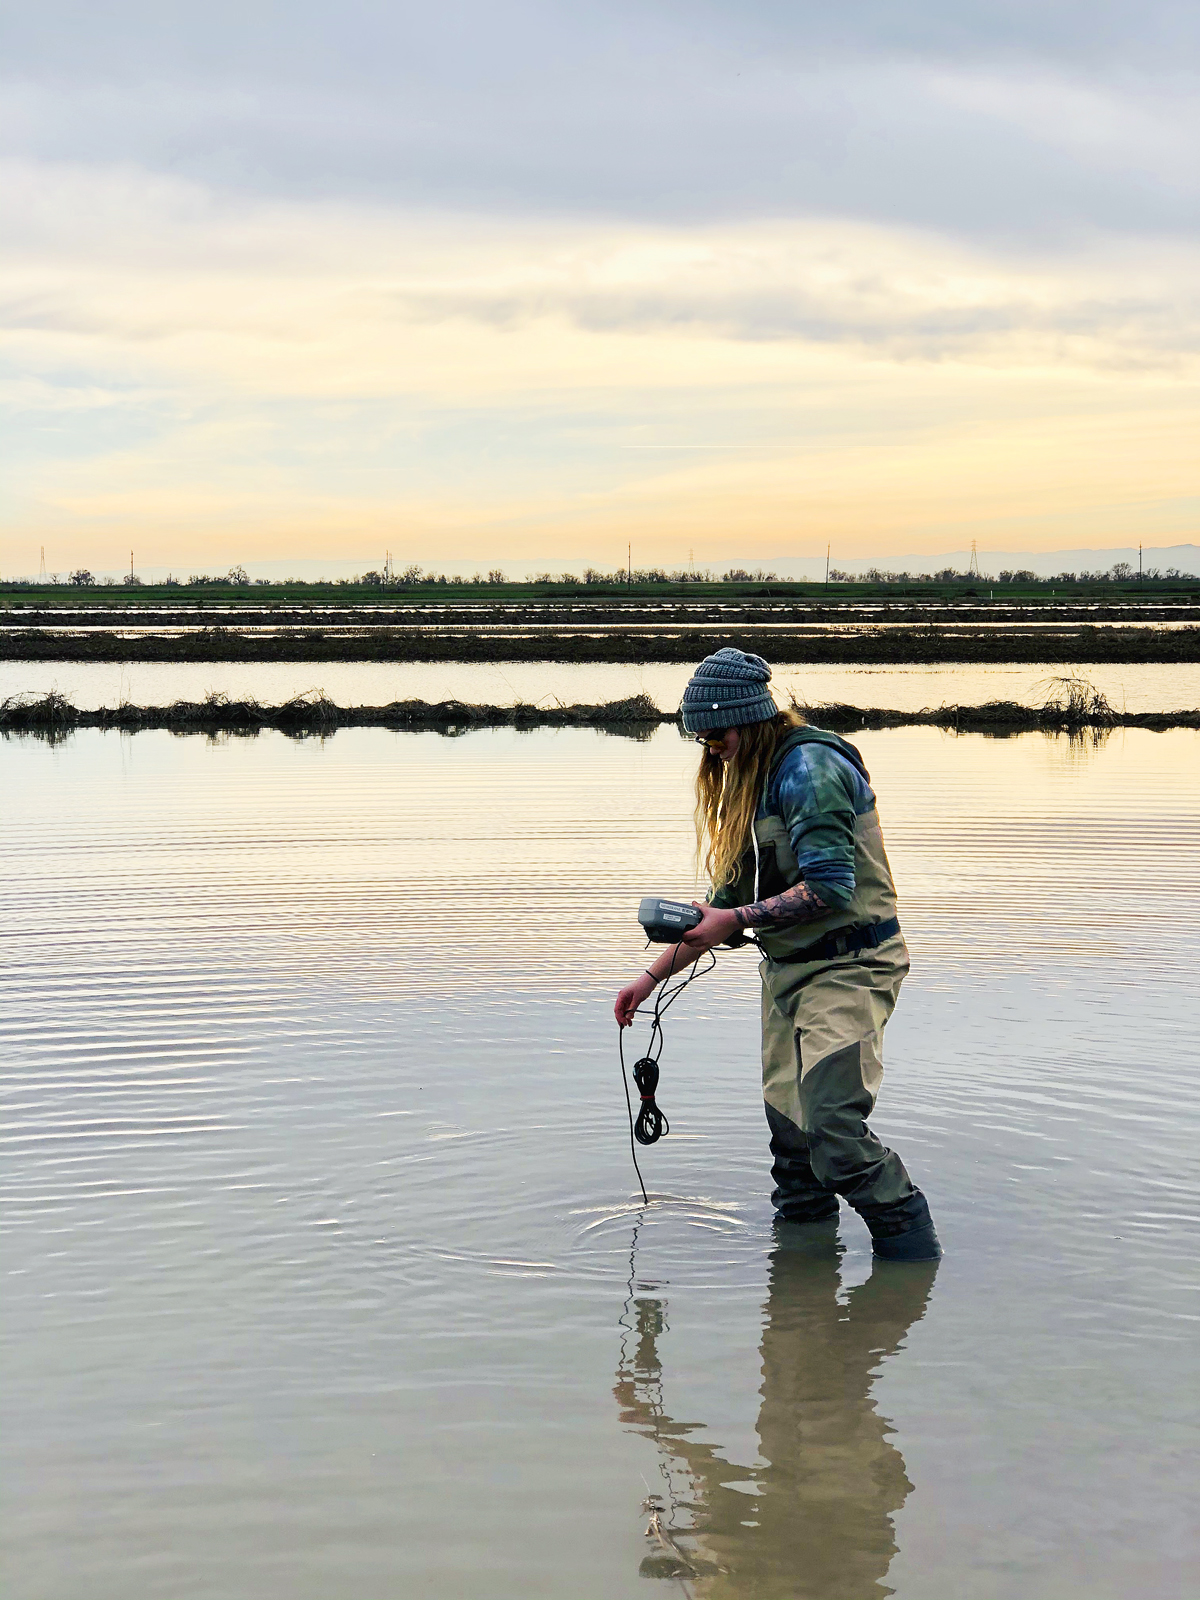 Member of the UC Davis team measuring critical biological water quality parameters.